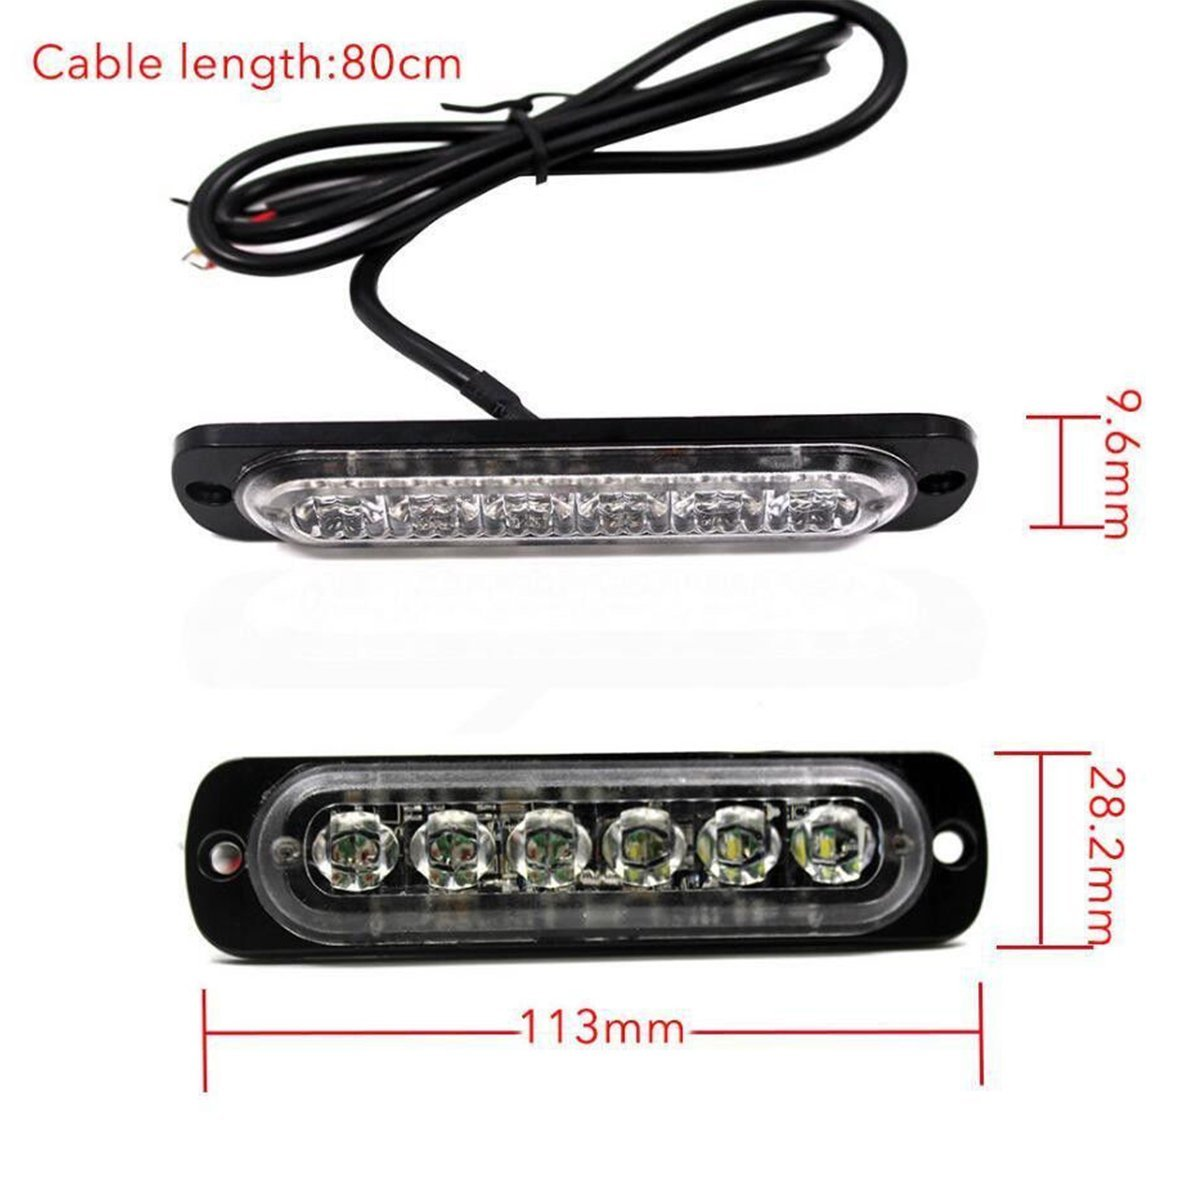 AutoRocking 4 PCS LED Car Emergency Lights Flashing Strobe Light Bar for Cars Trucks Lorries Motorcycles 12-24V IPX-4